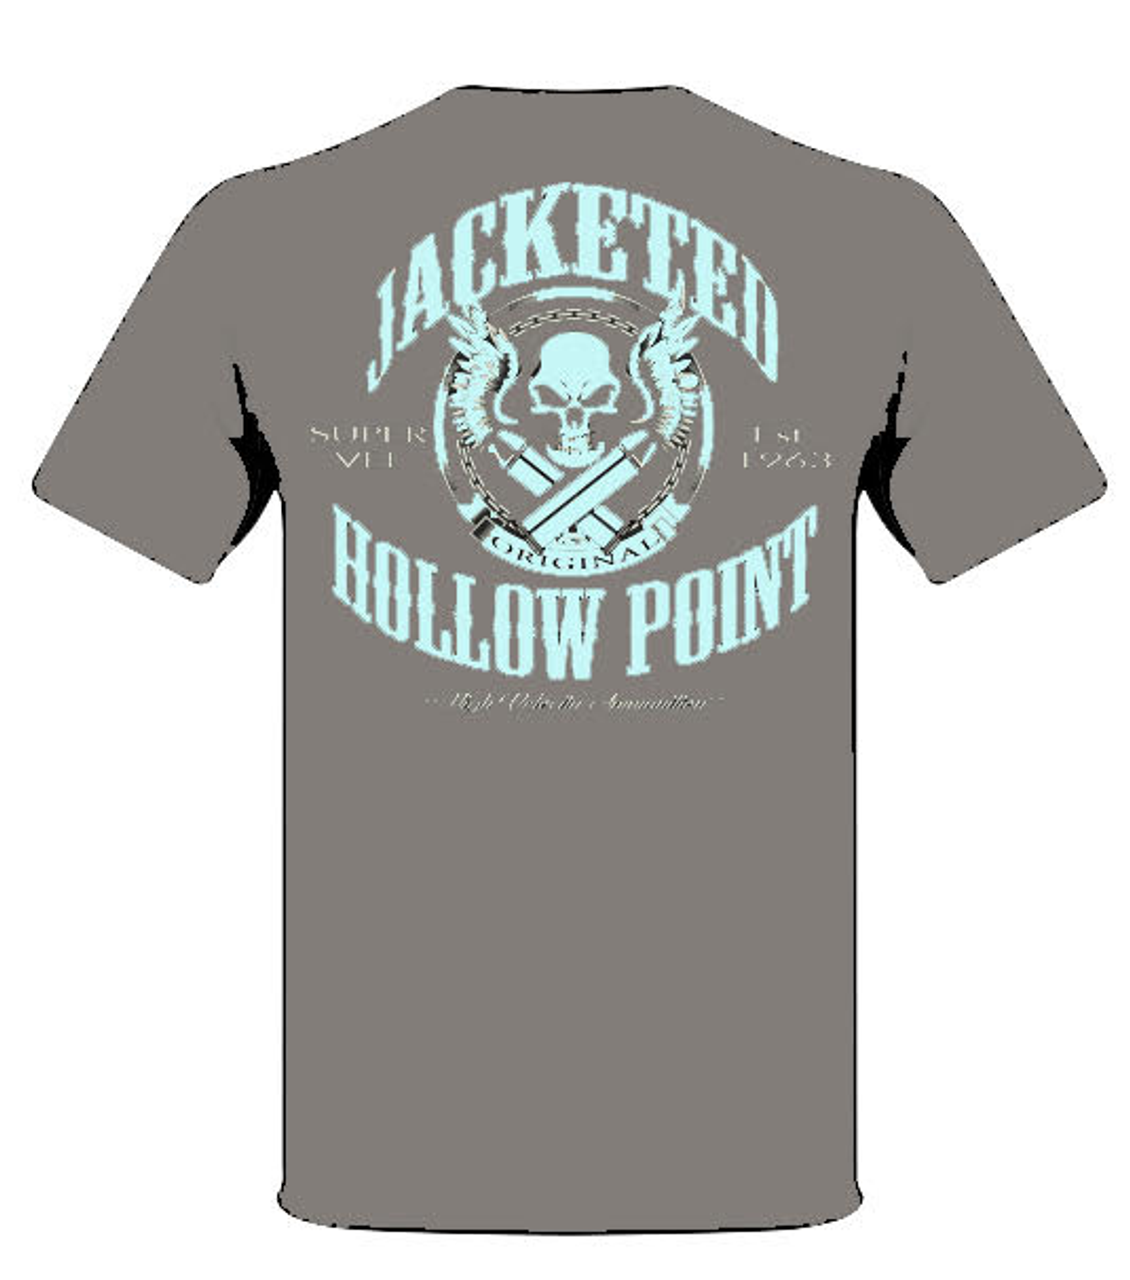 """Jacketed Hollow Point"""